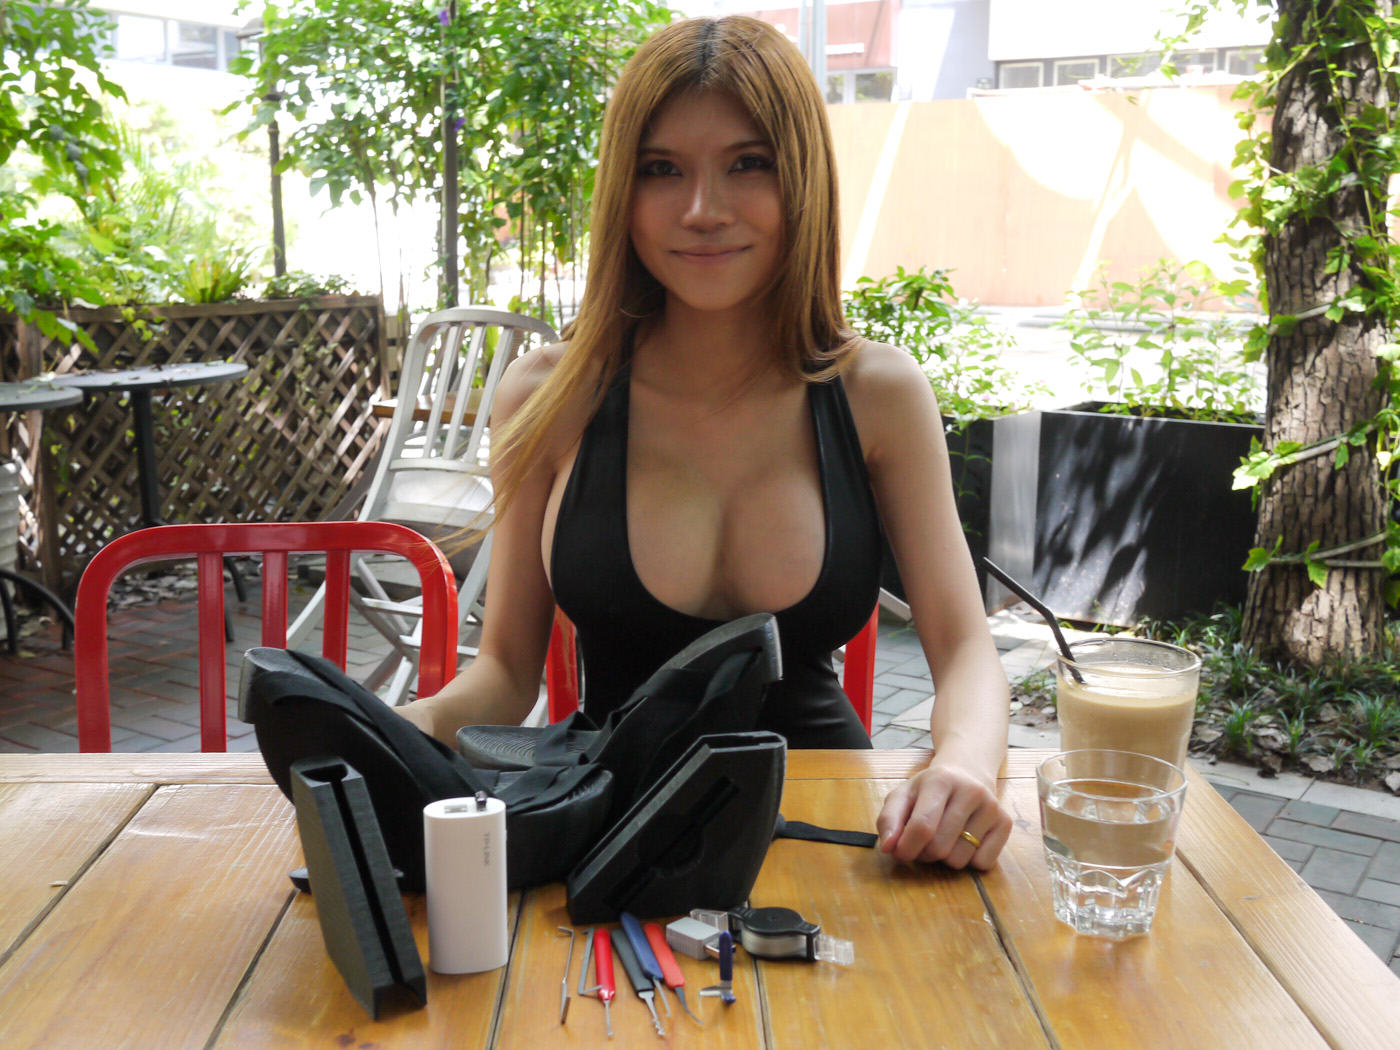 Chinese Engineer 'SexyCyborg' Hides Portable Hacking Kit In Her Platform Heels UNILAD 1271